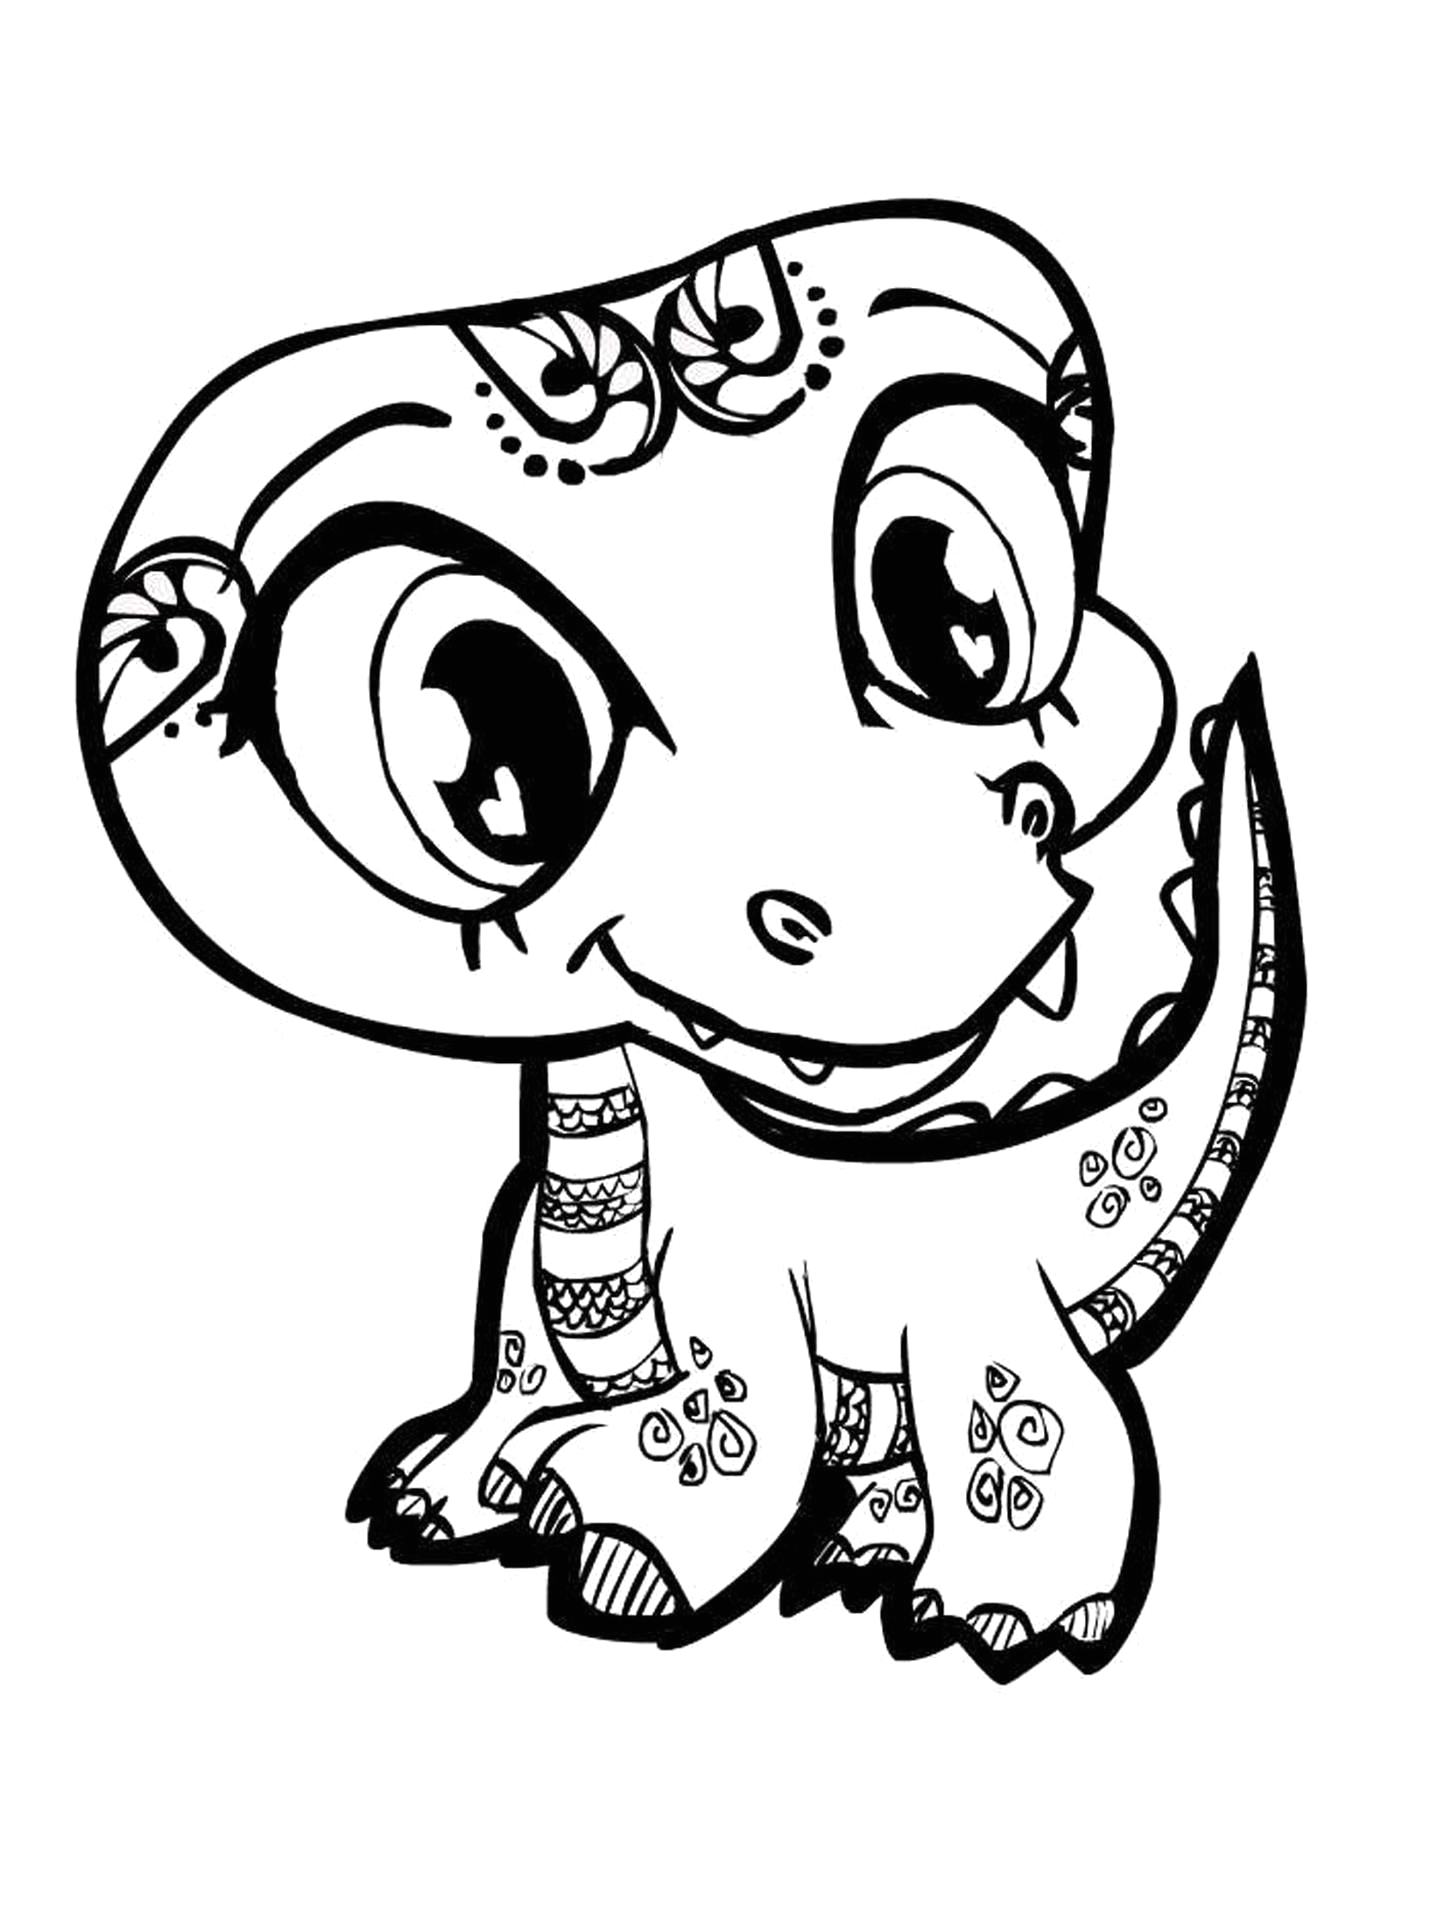 Coloring Pages for Teenage Girl to Print Cool Coloring Pages for Teenage Girls at Getcolorings